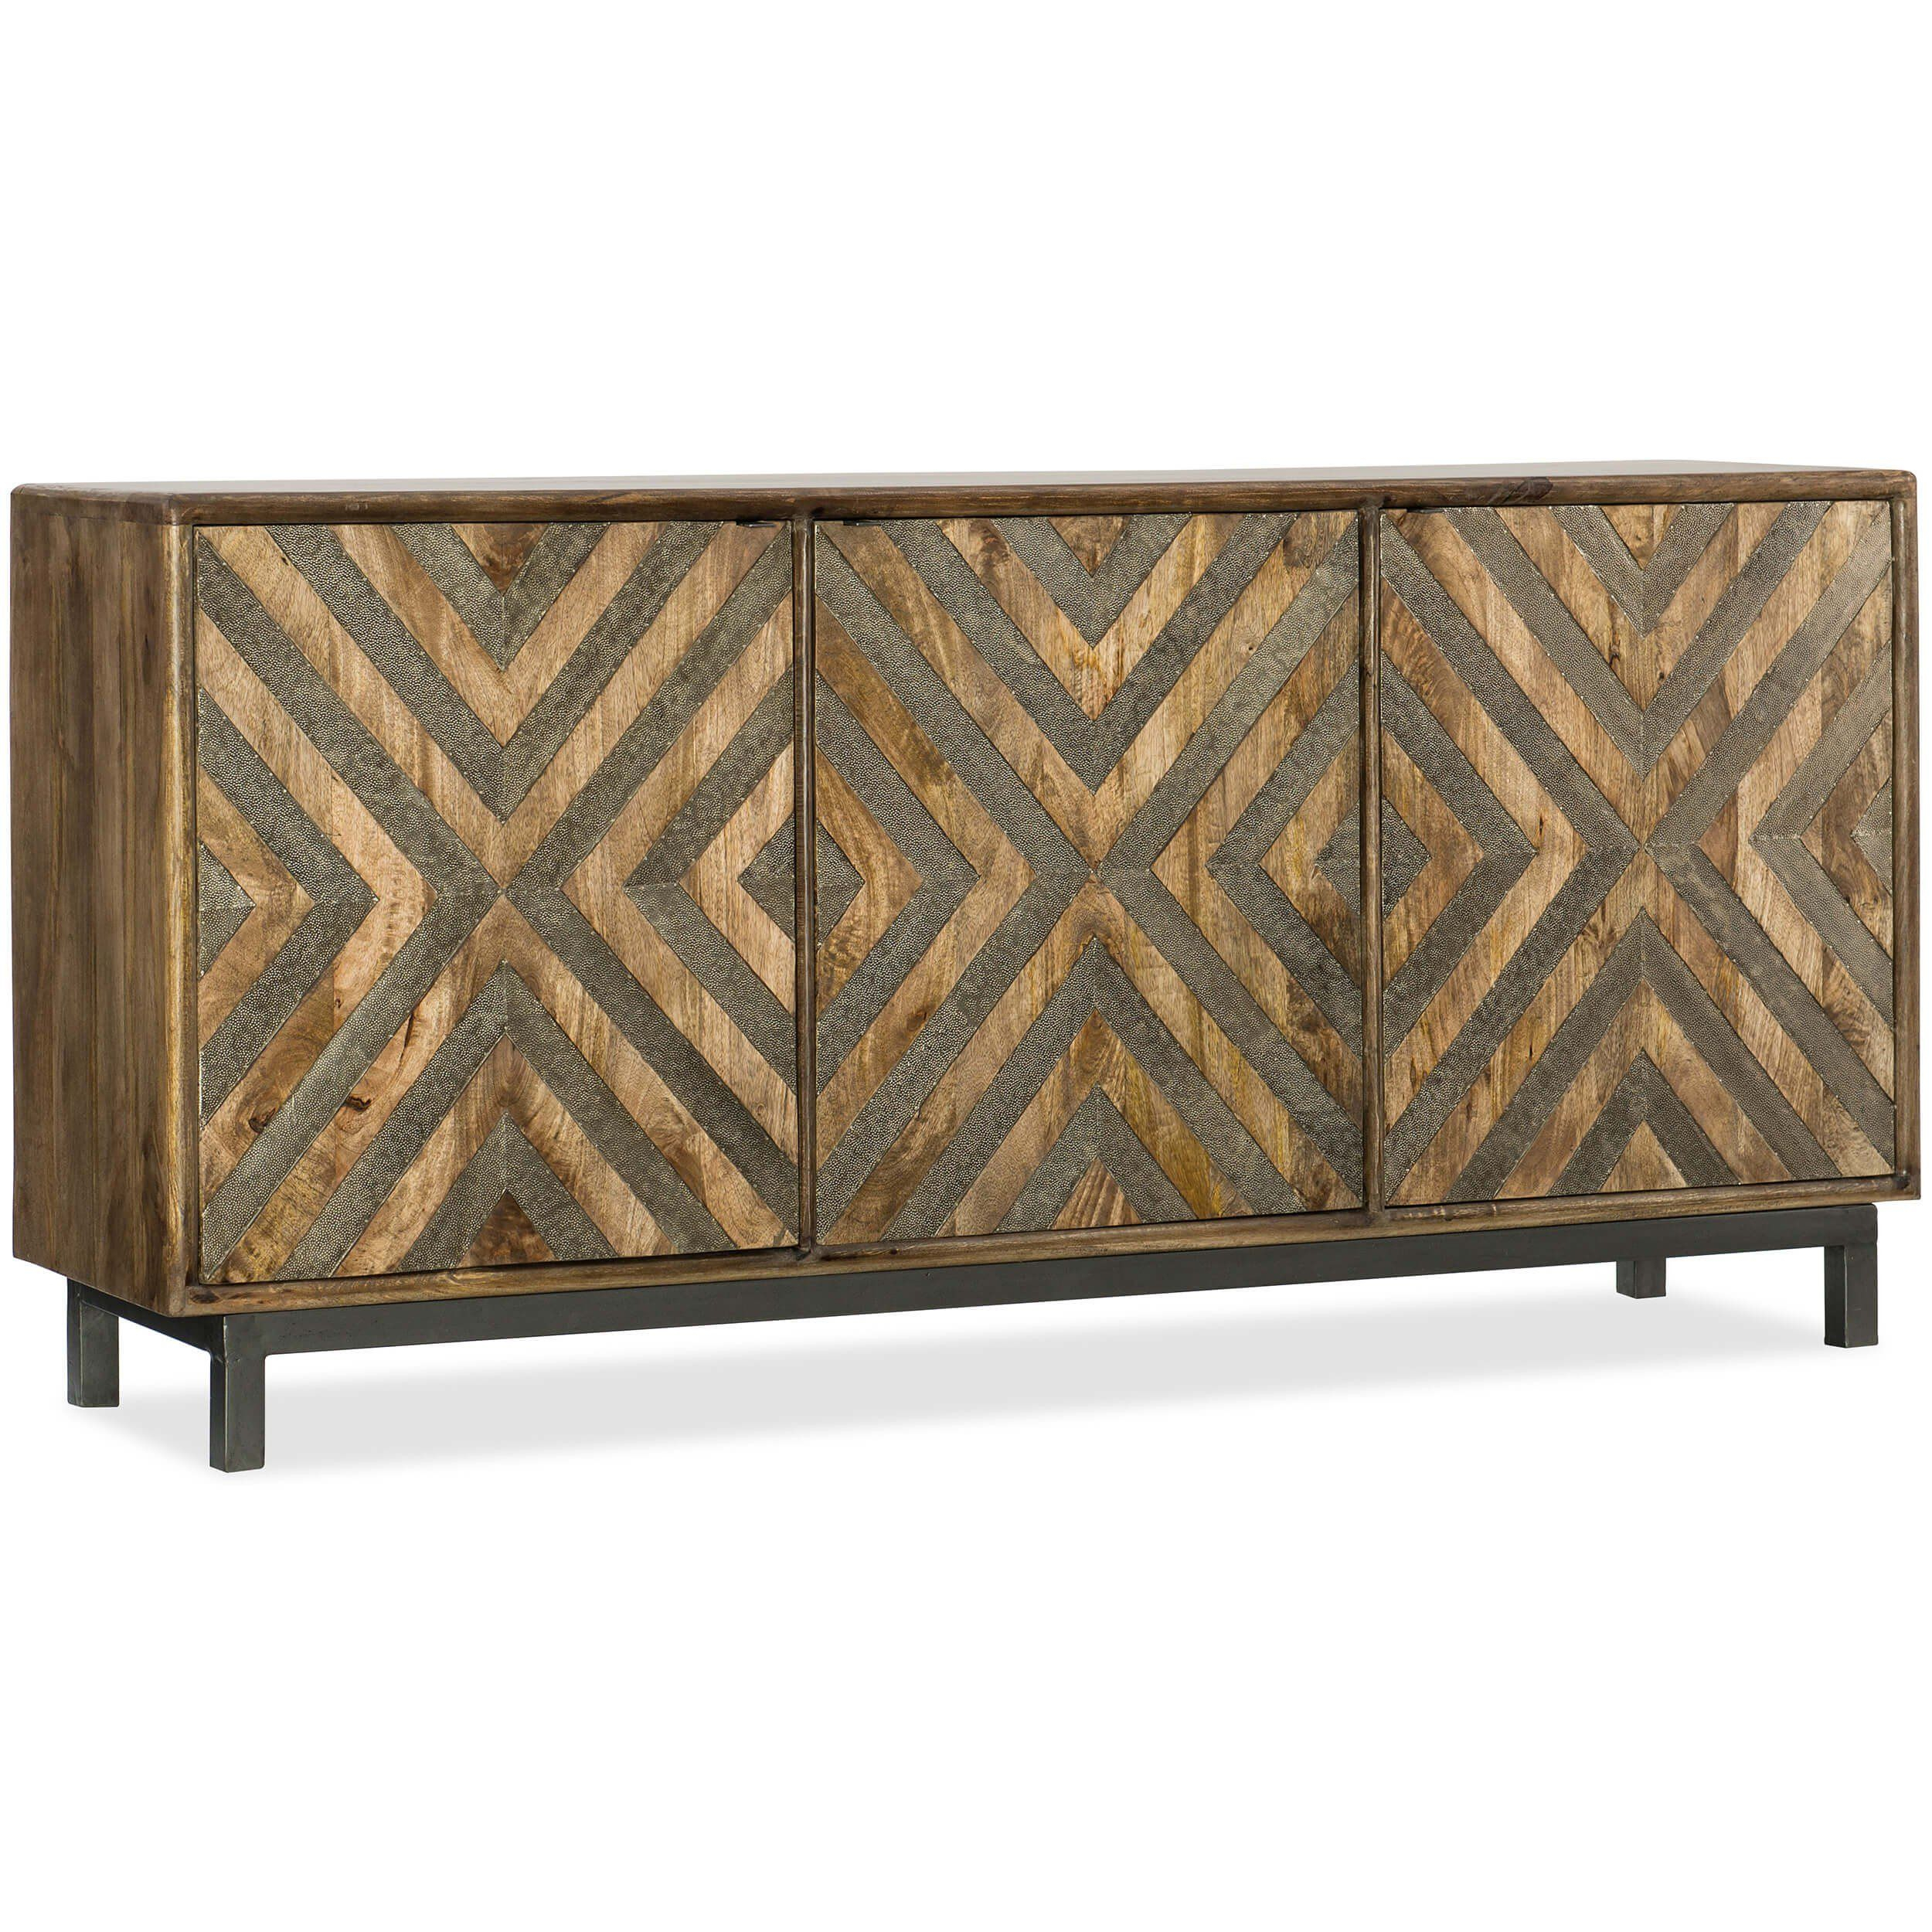 Serramonte Entertainment Console | Pinterest | Consoles, Modern With Regard To Parsons White Marble Top & Stainless Steel Base 48x16 Console Tables (View 16 of 30)